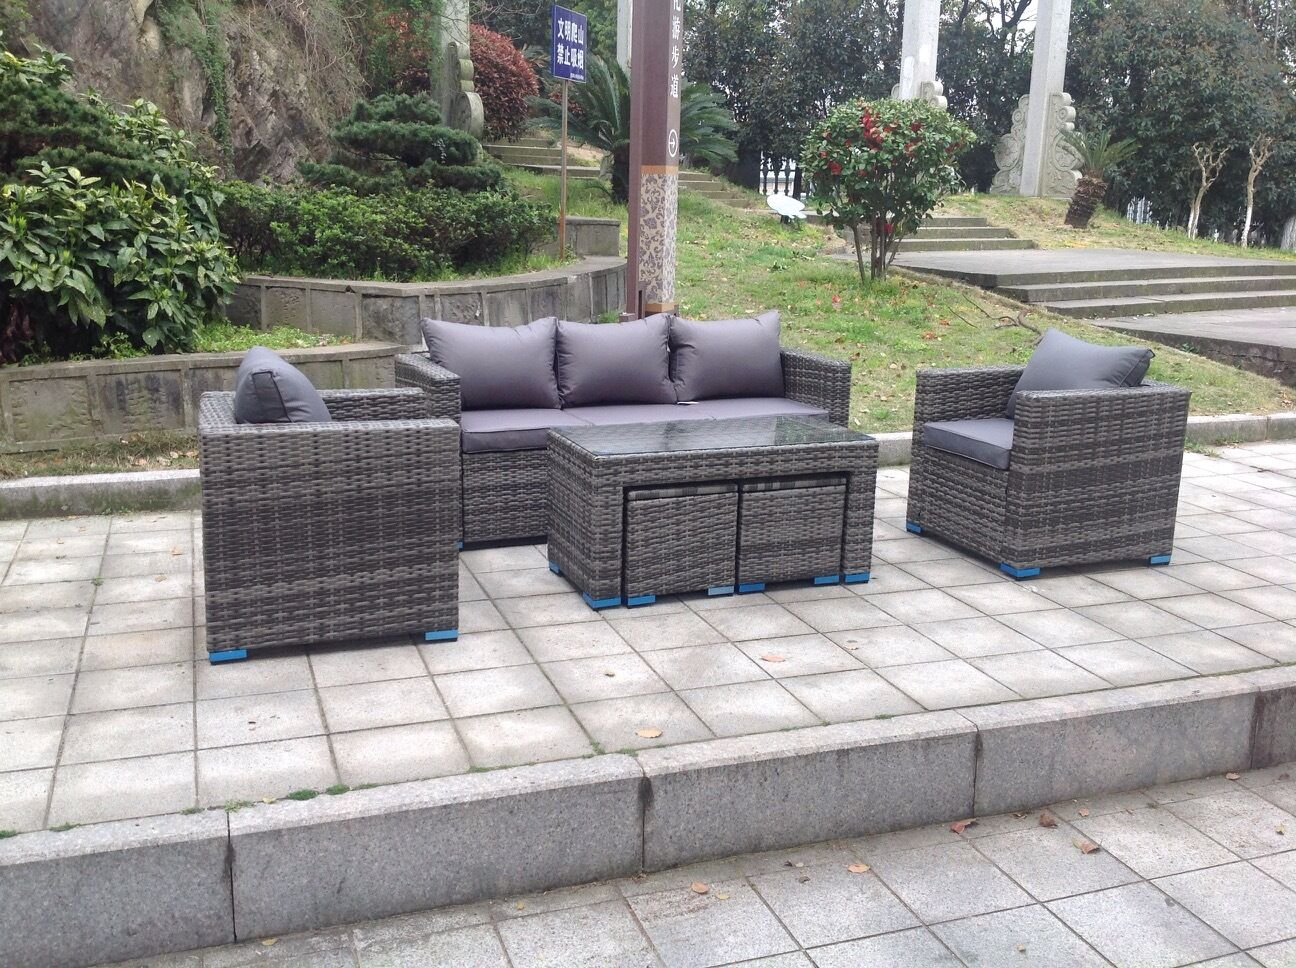 Rattan Garden Sofa Set Ebay New Rattan Wicker Conservatory Outdoor Garden Furniture